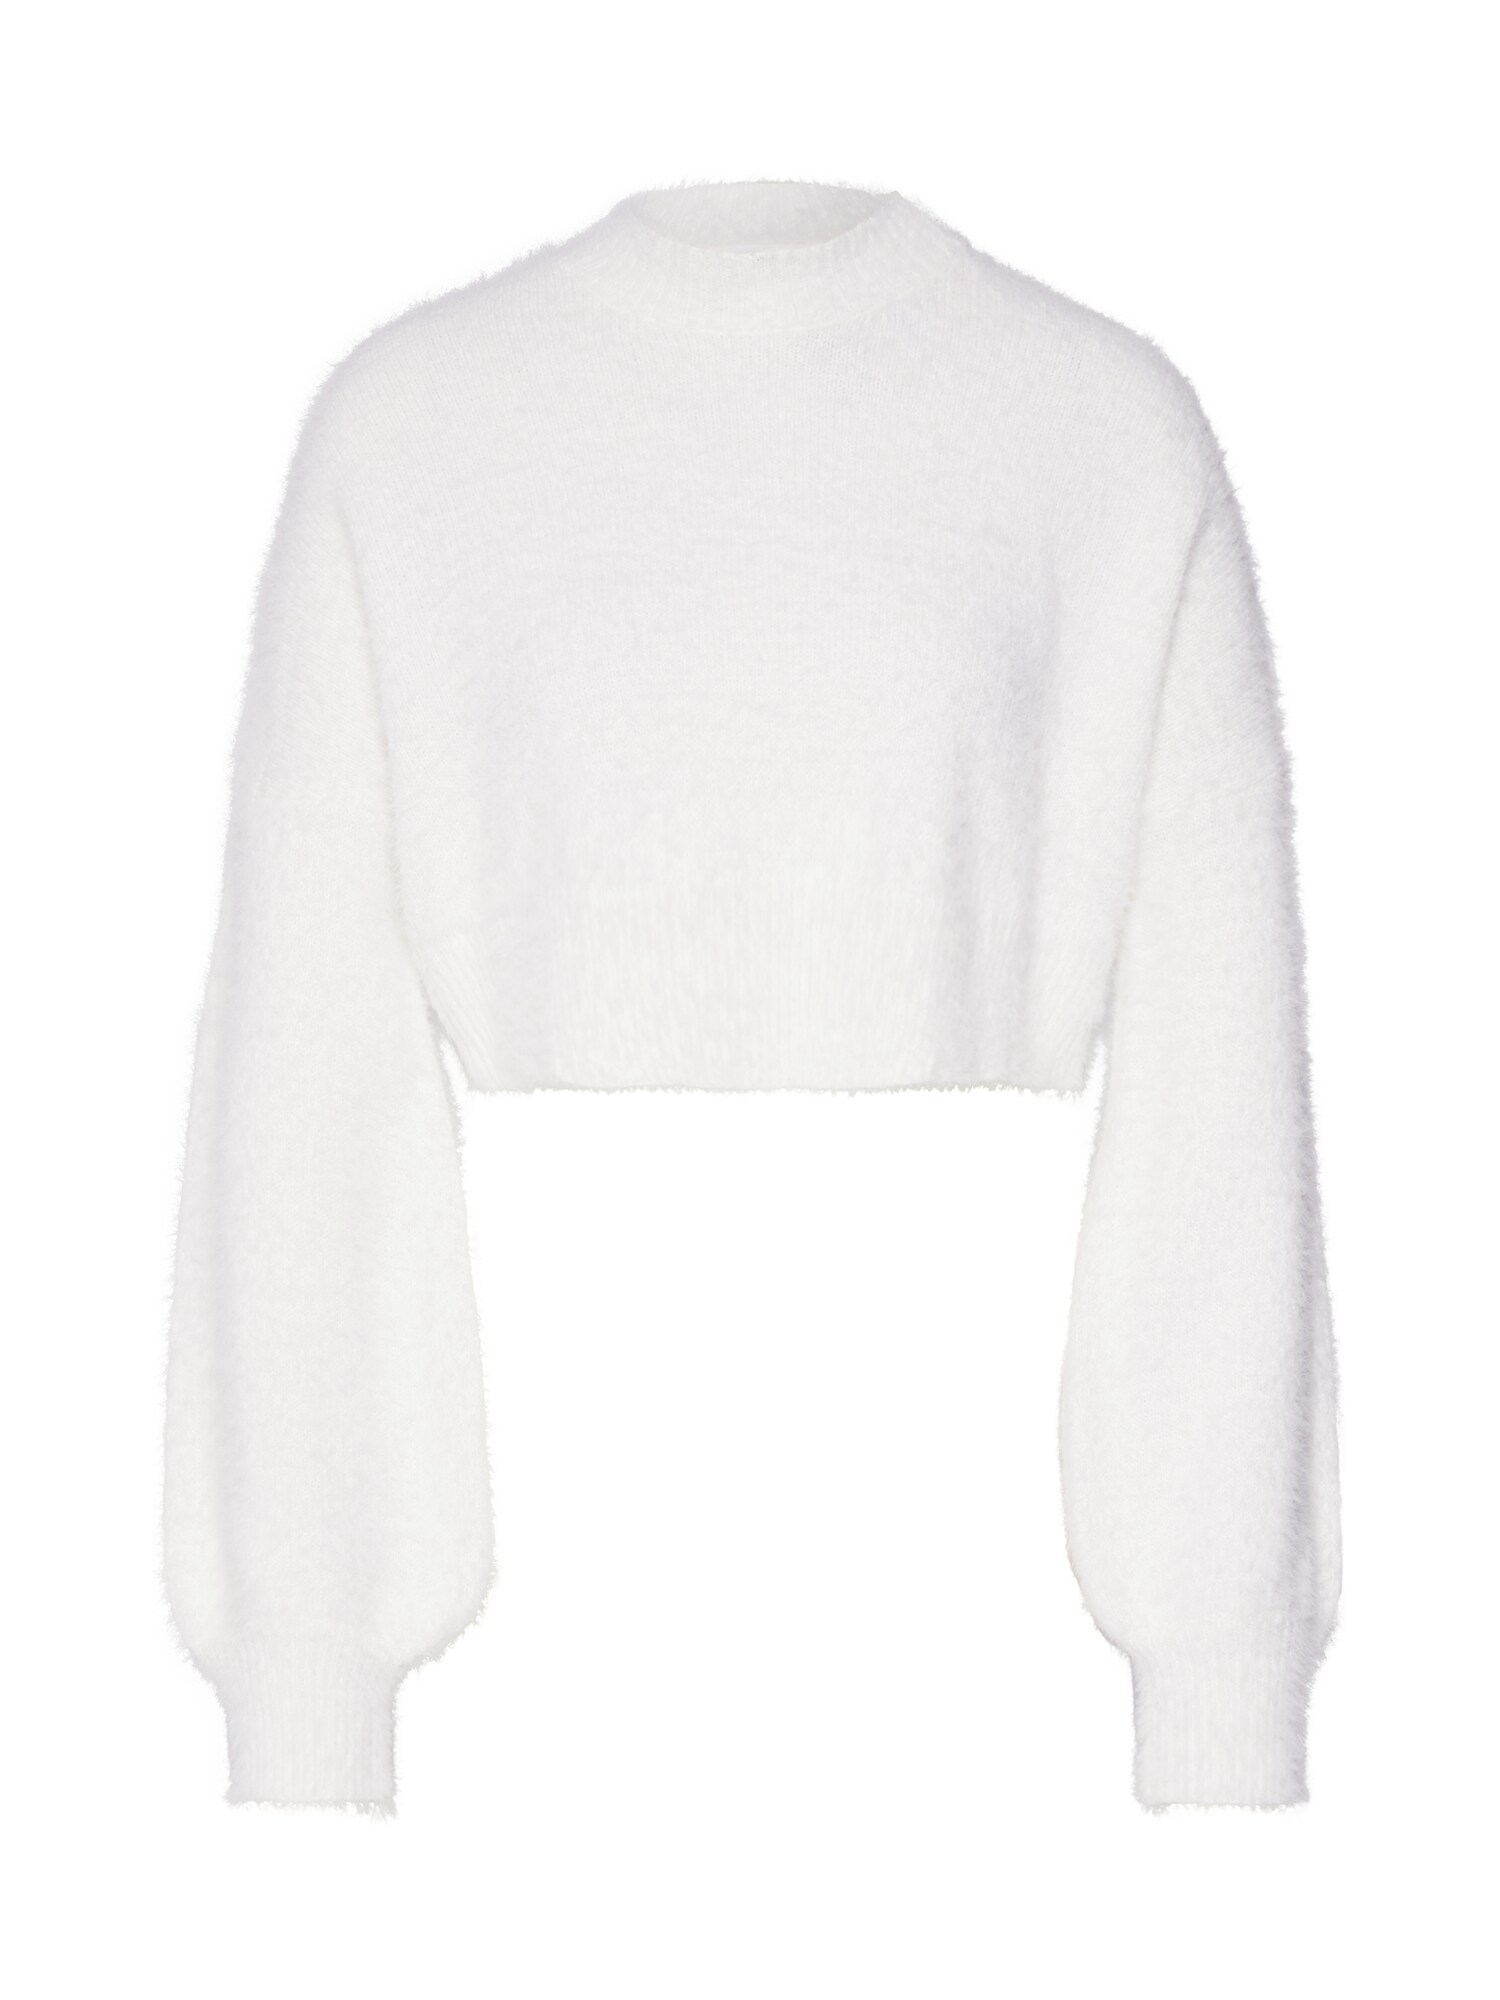 Svetr HIGH NECK FLUFFY BALOON SLEEVE JUMPER bílá Missguided